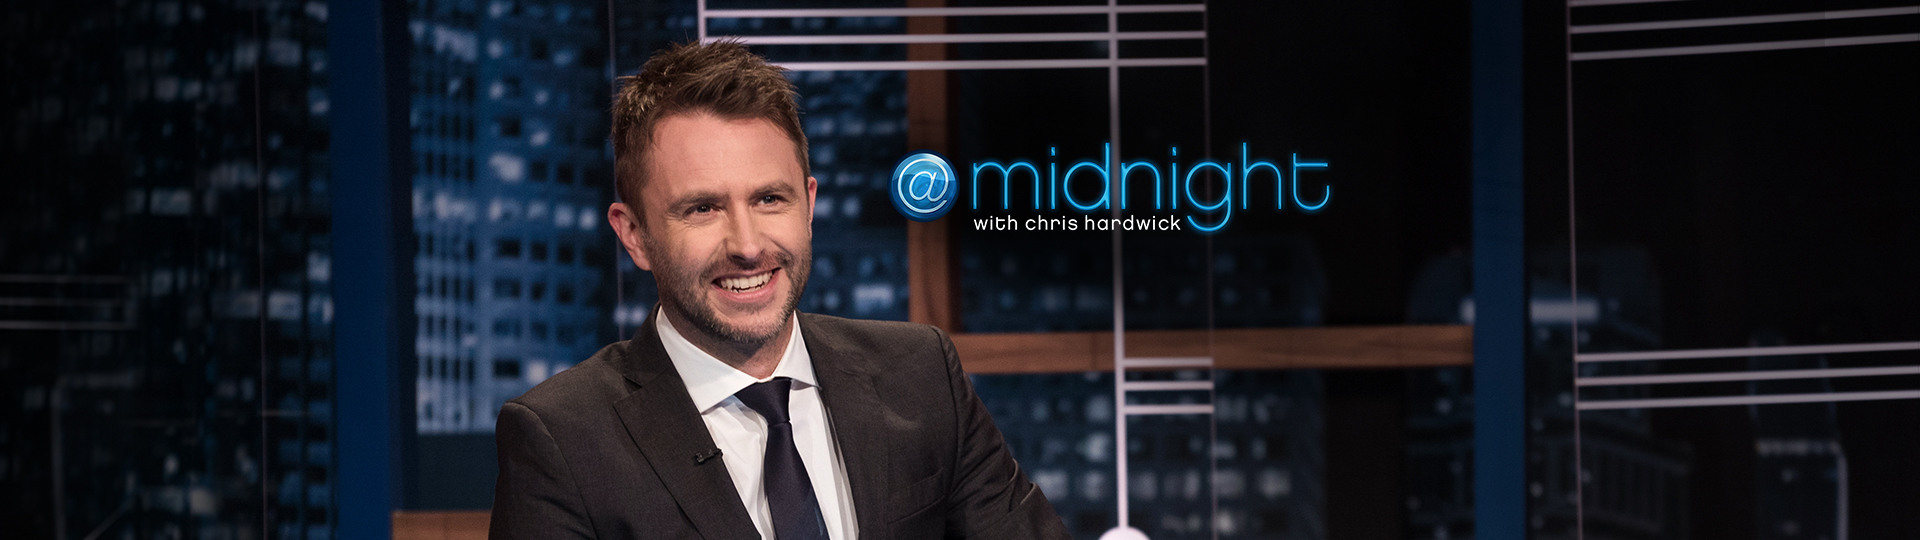 Midnight With Chris Hardwick Series Comedy Central Official Site Cc Com